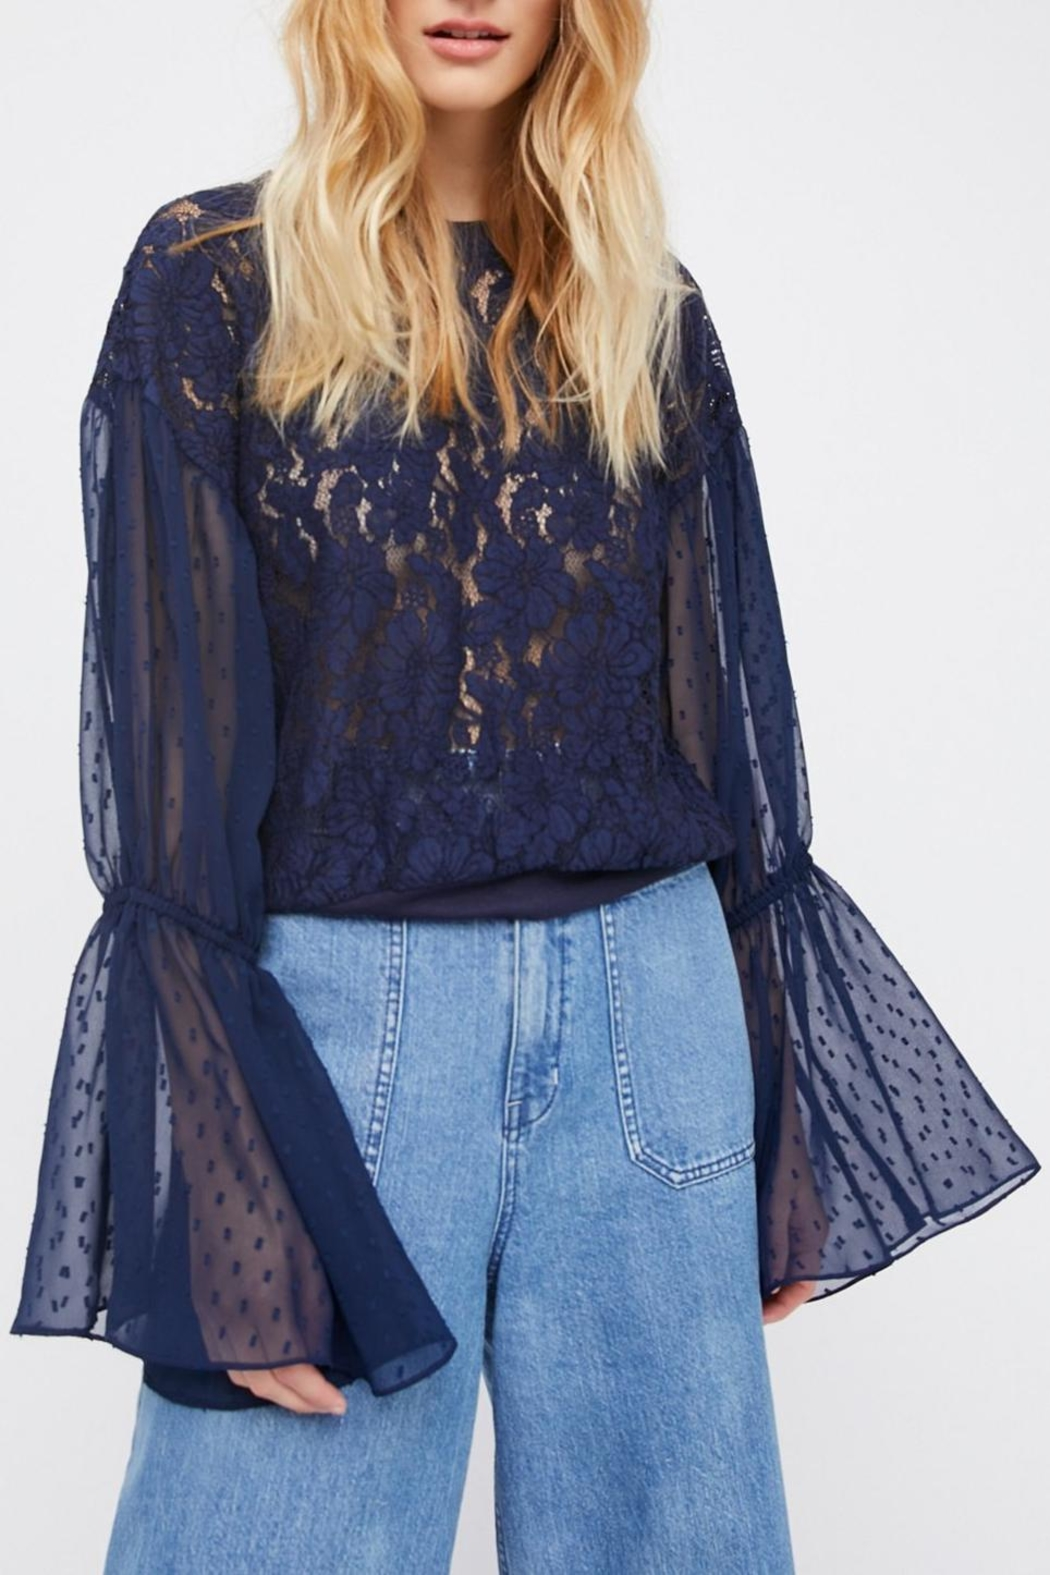 Free People Something Like Love Top - Main Image